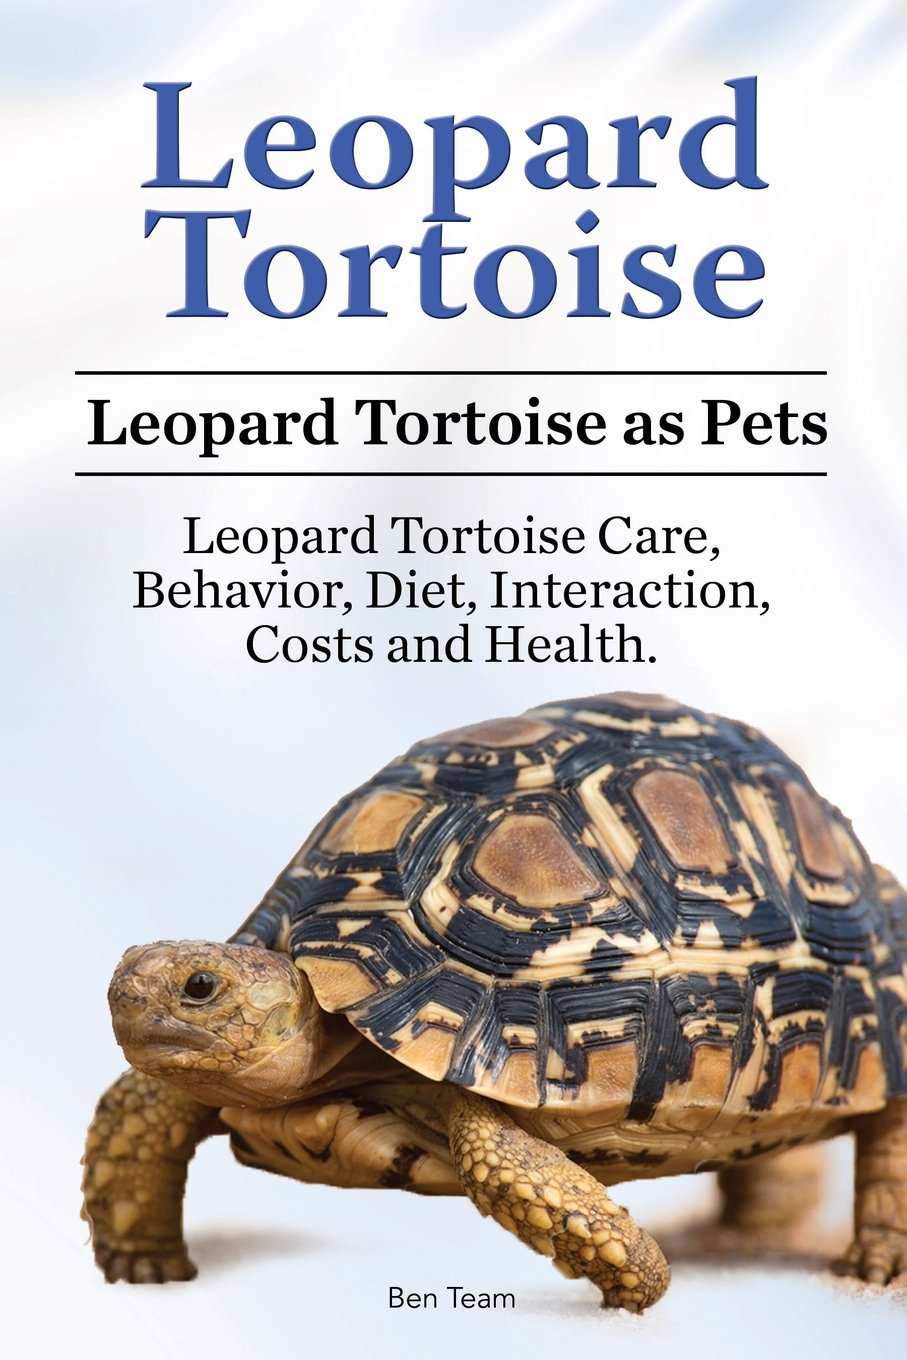 Leopard Tortoise. Leopard Tortoise as Pets. Leopard Tortoise Care, Behavior, Diet, Interaction, Costs and Health.